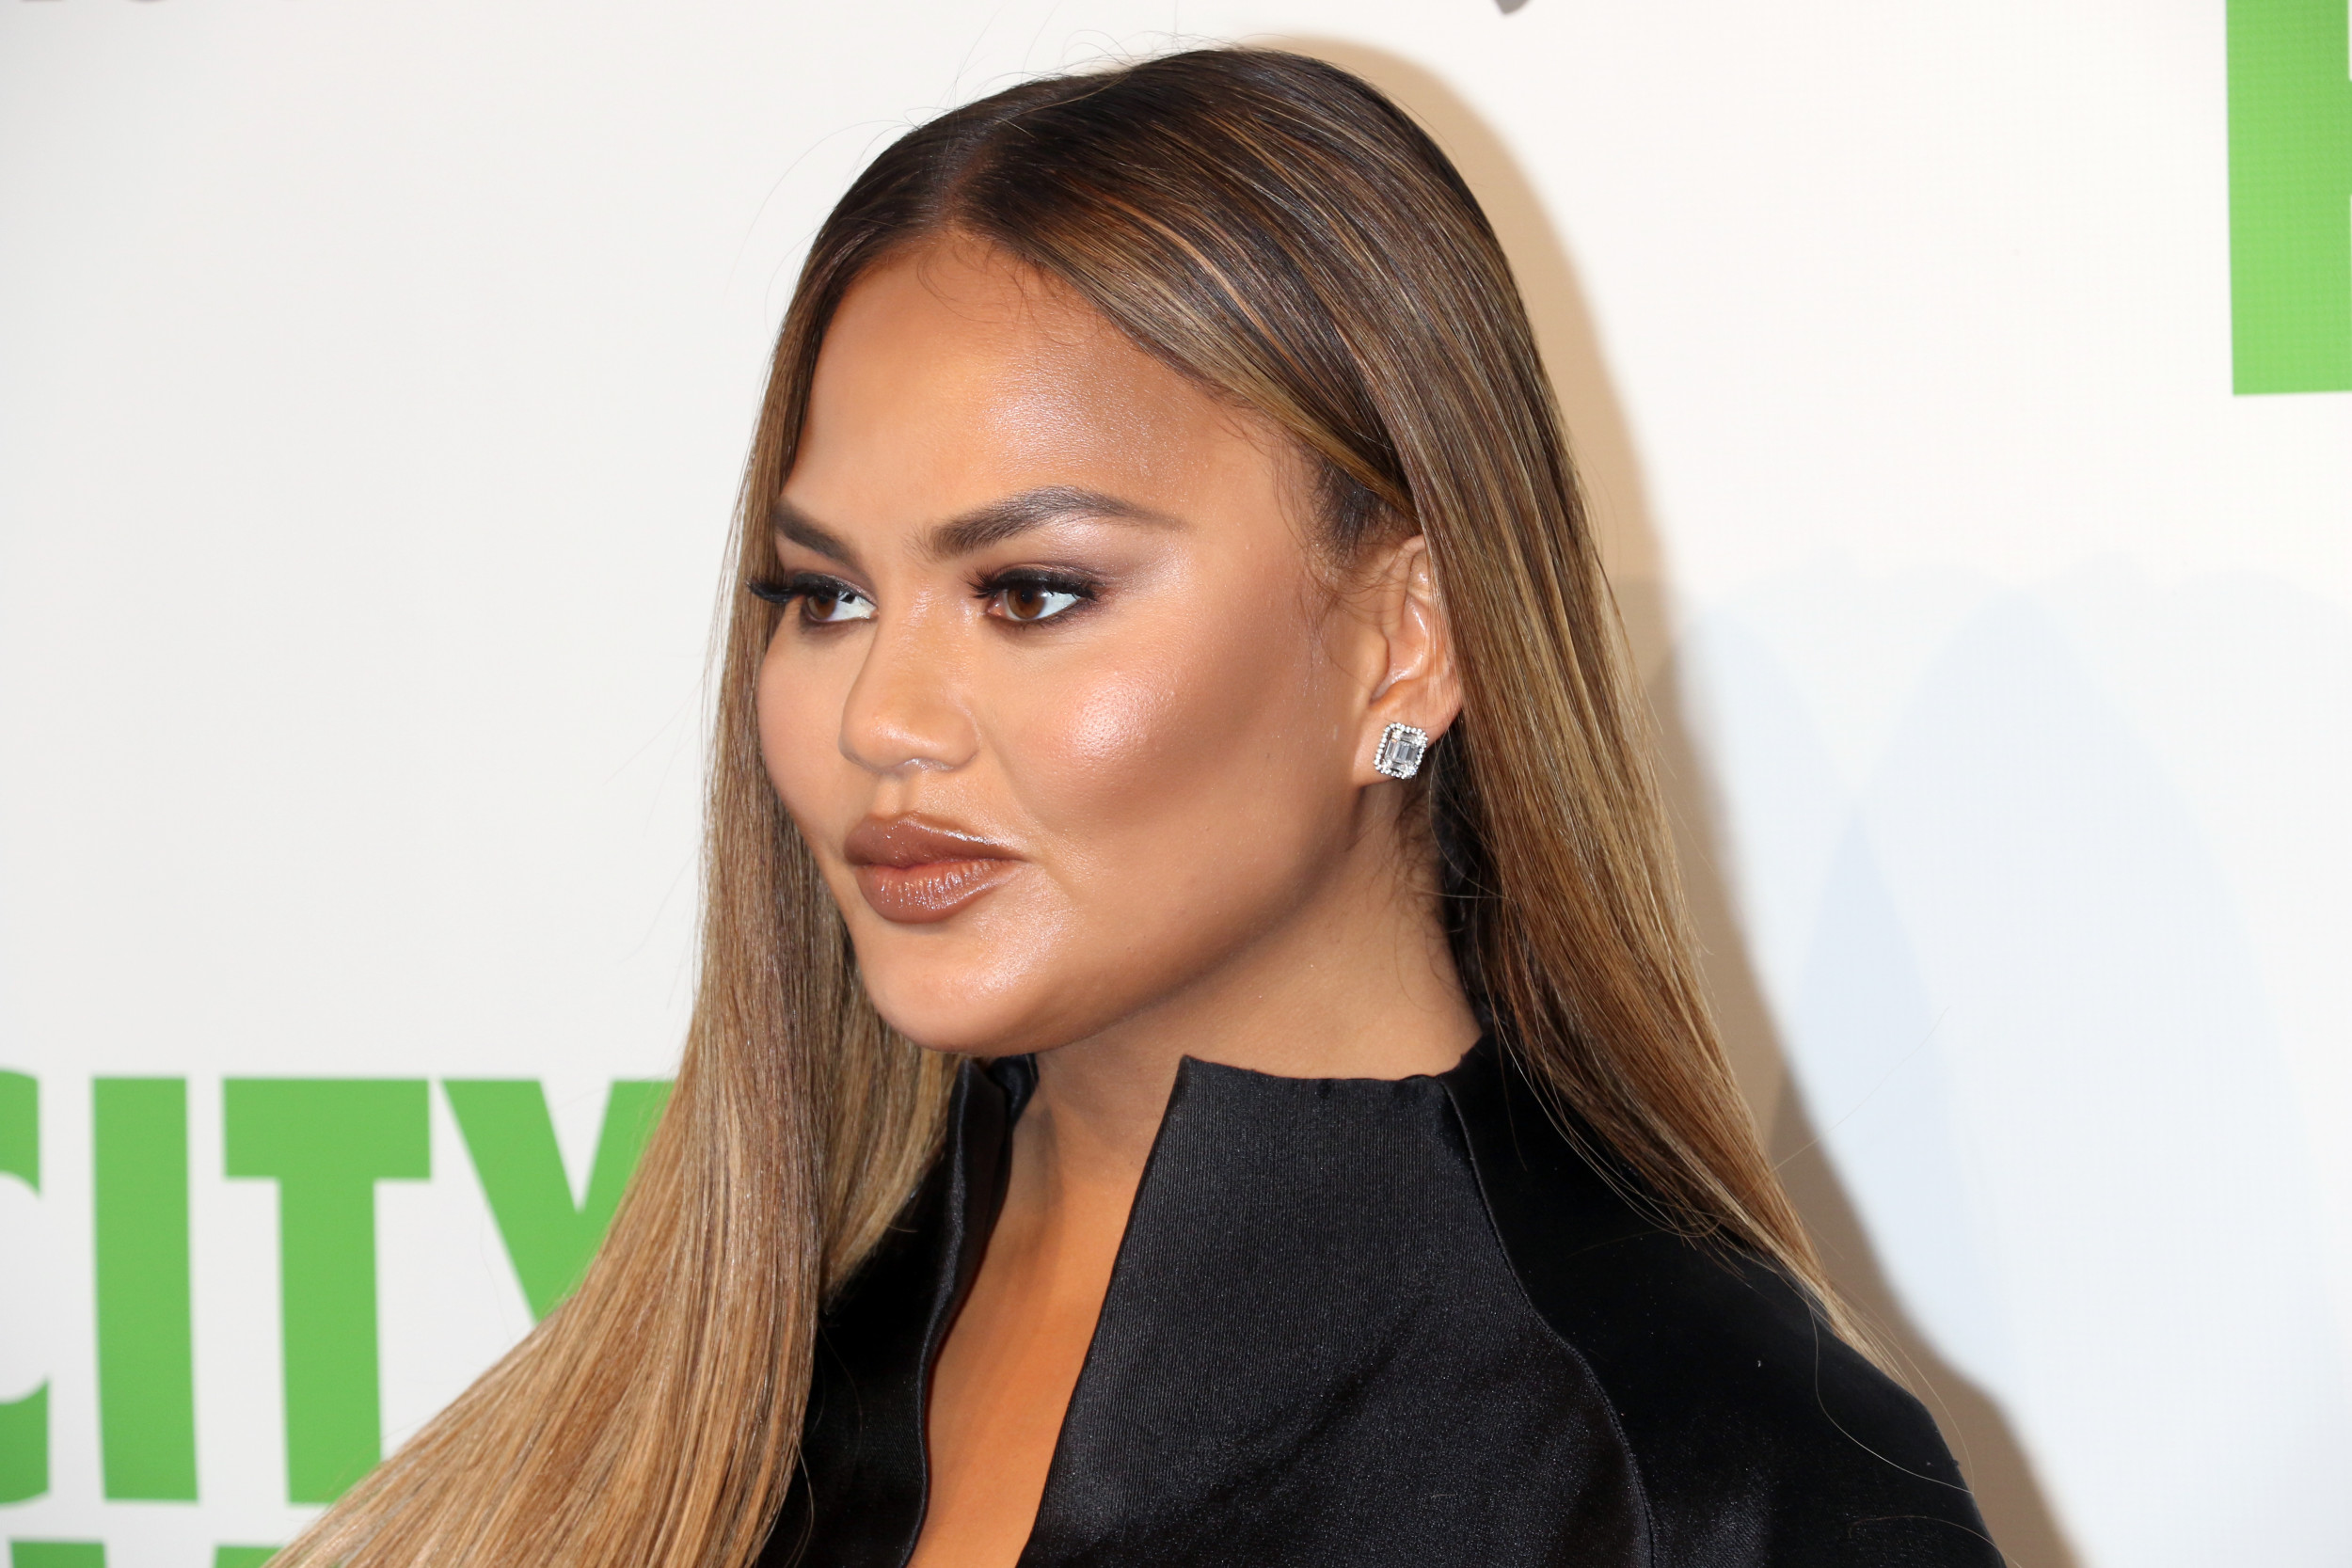 Chrissy Teigen Critics Resurface Her Feud With Trump Amid Stodden's Claims